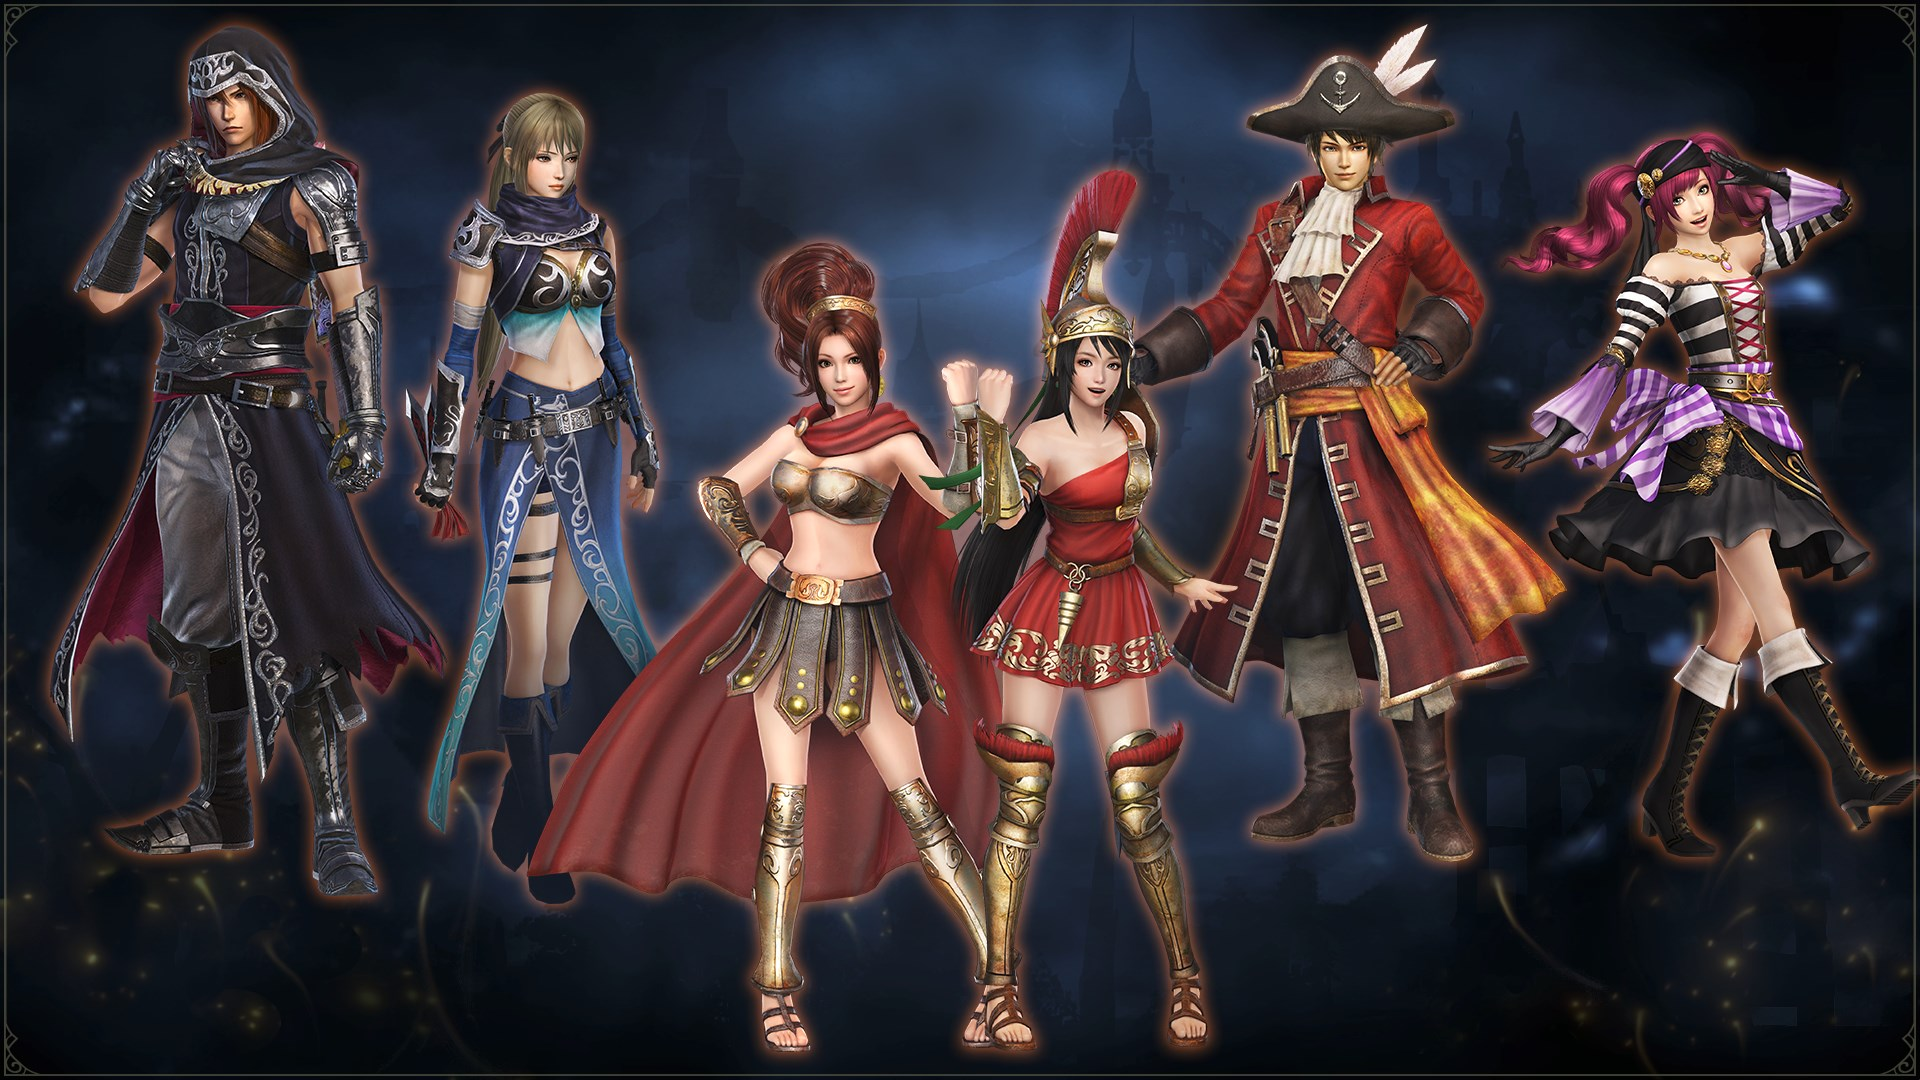 WARRIORS OROCHI 4: Special Costumes Pack 1